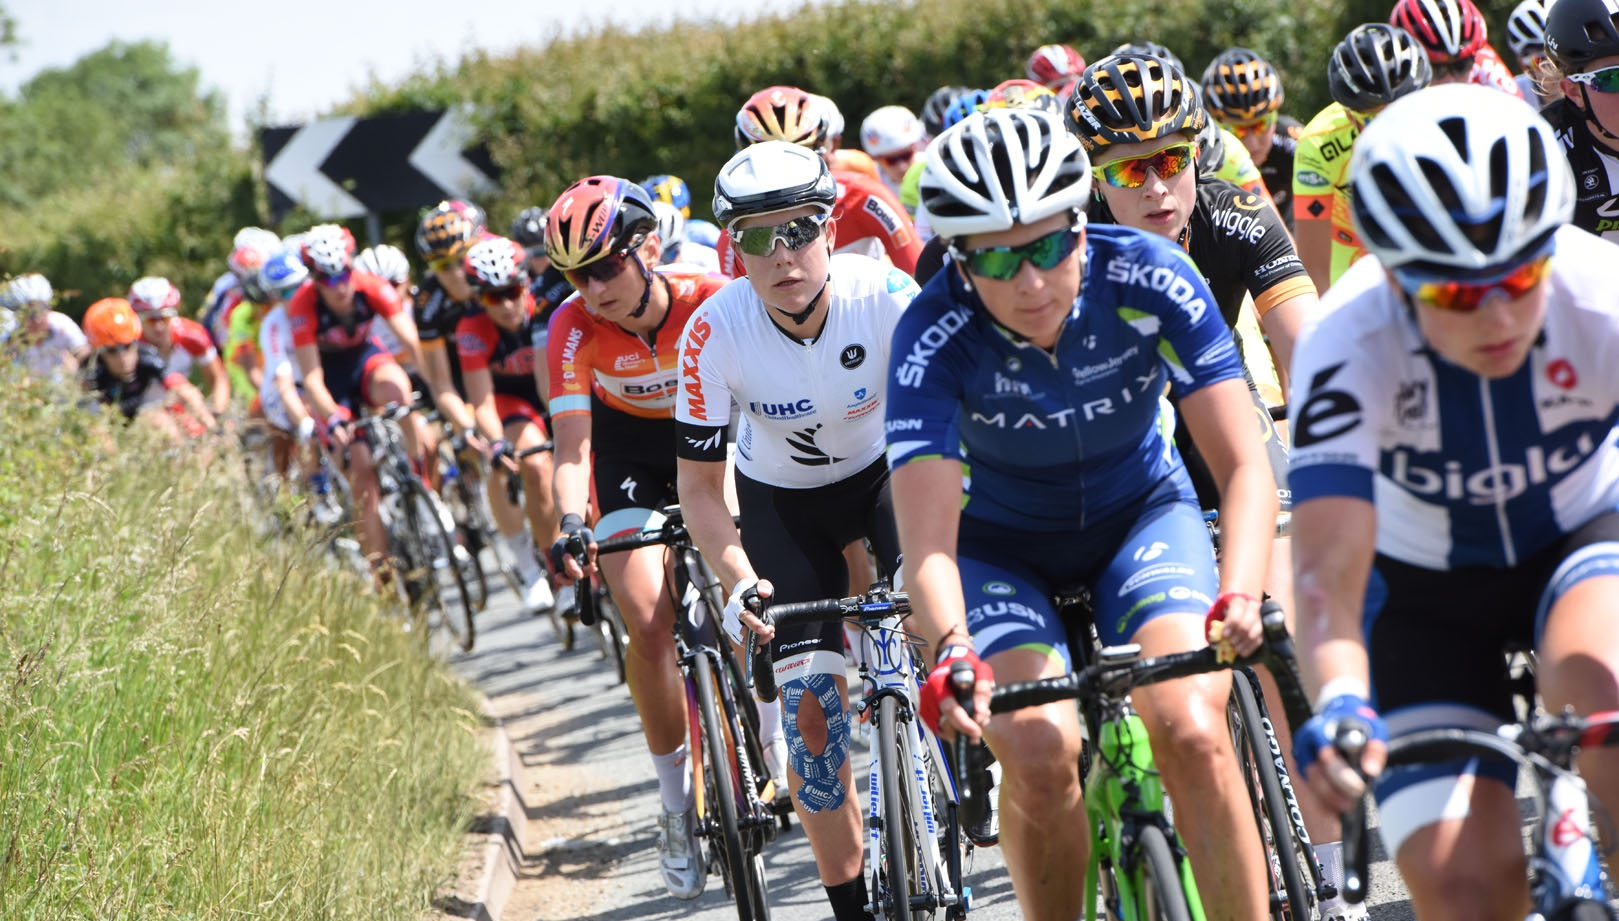 Interactive maps and full ETAs now available for all Aviva Women's Tour stages